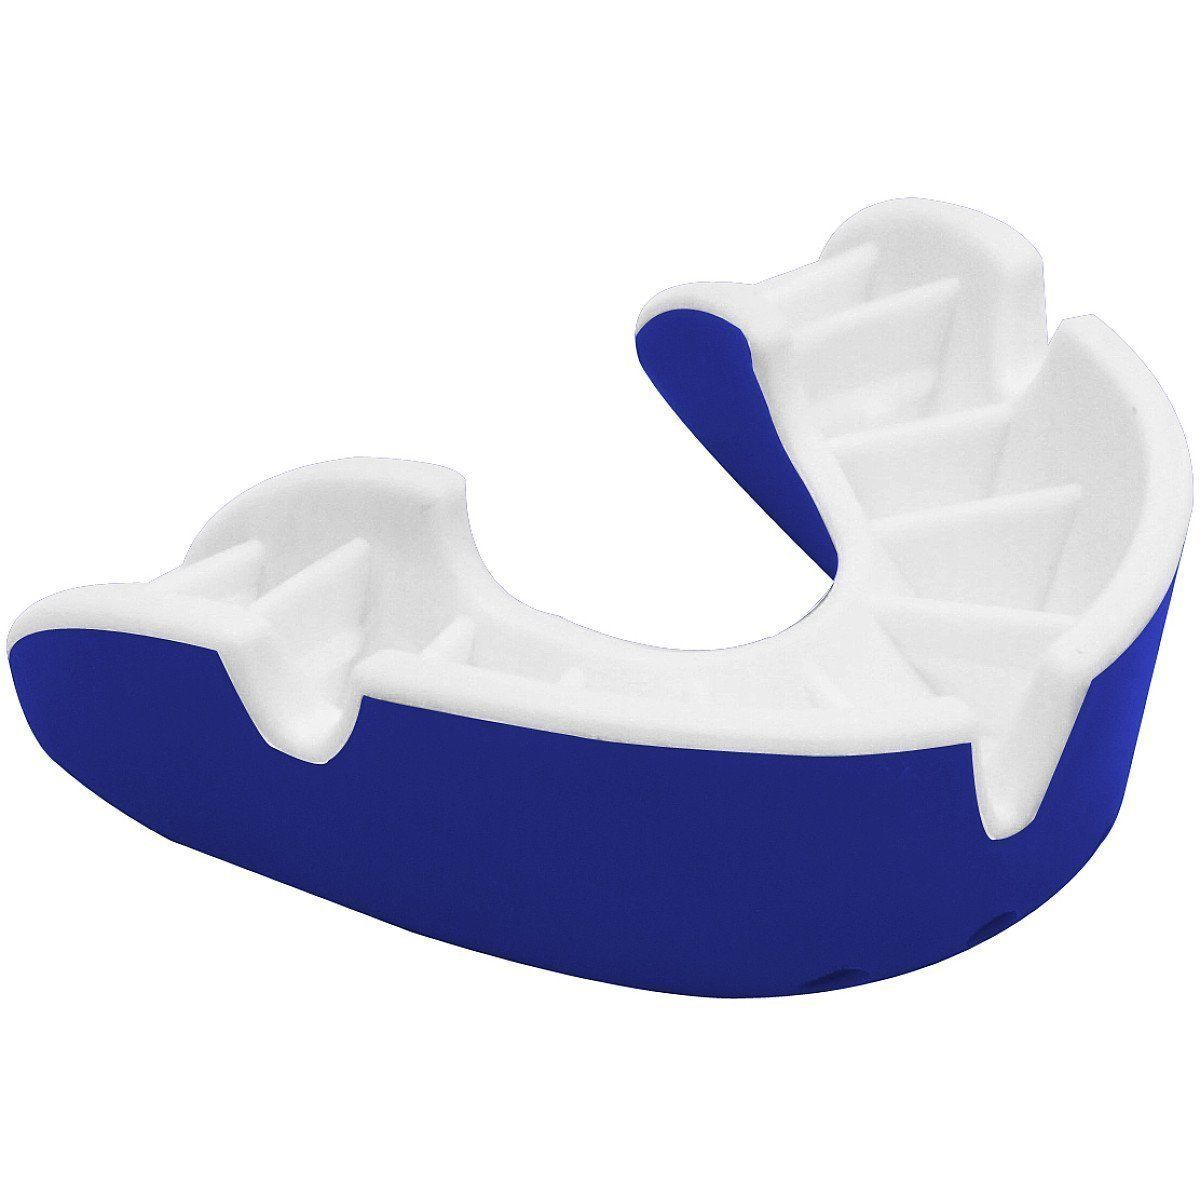 Mueller Matrix Moderate Adult 9+ Football Mouthguard